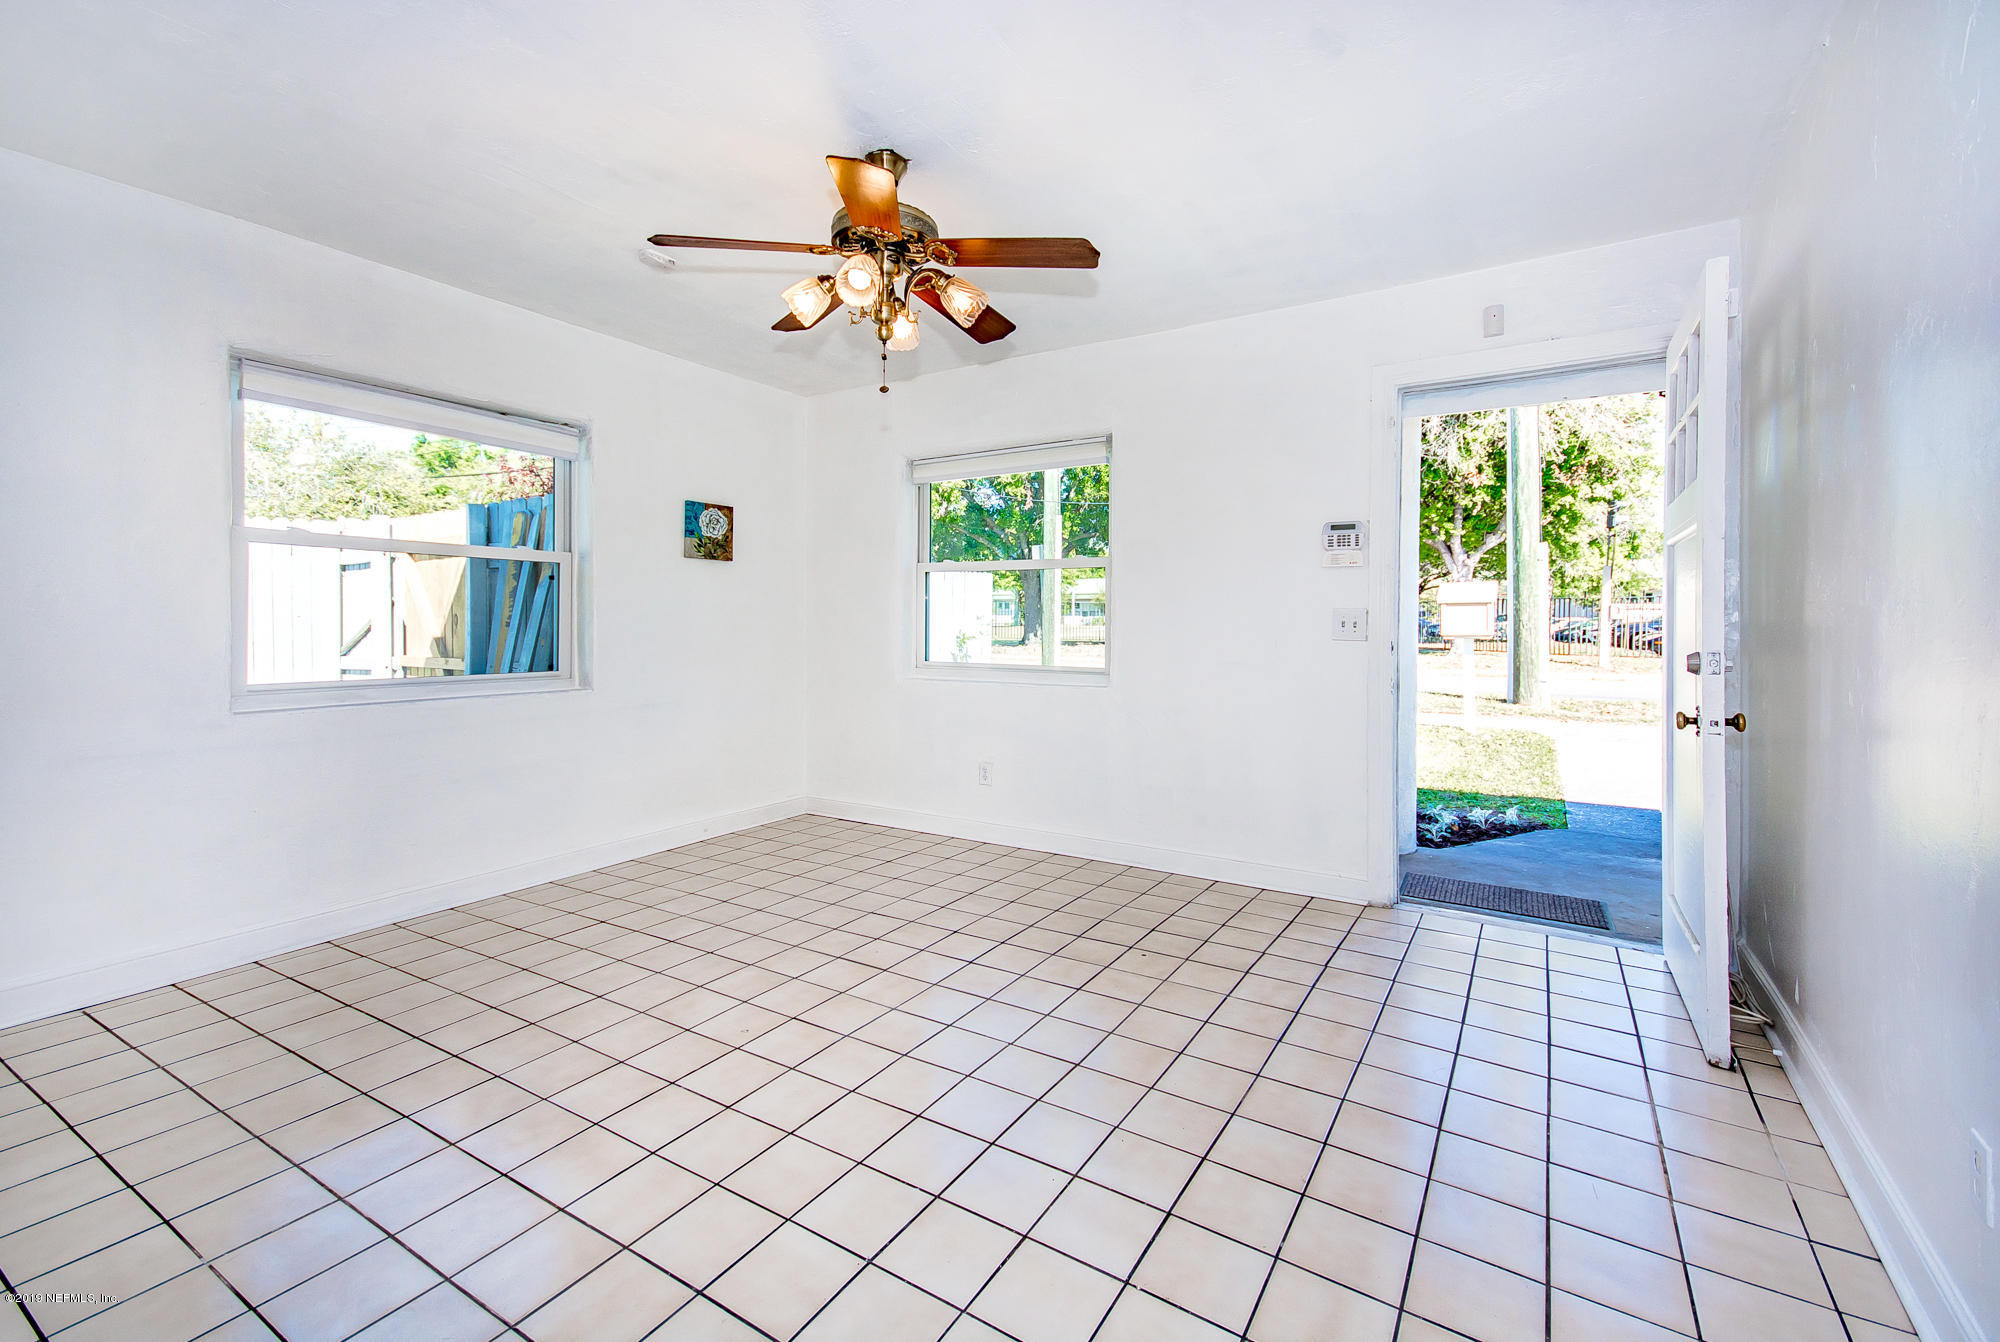 124-126 12TH, JACKSONVILLE, FLORIDA 32206, 4 Bedrooms Bedrooms, ,4 BathroomsBathrooms,Residential - single family,For sale,12TH,979511